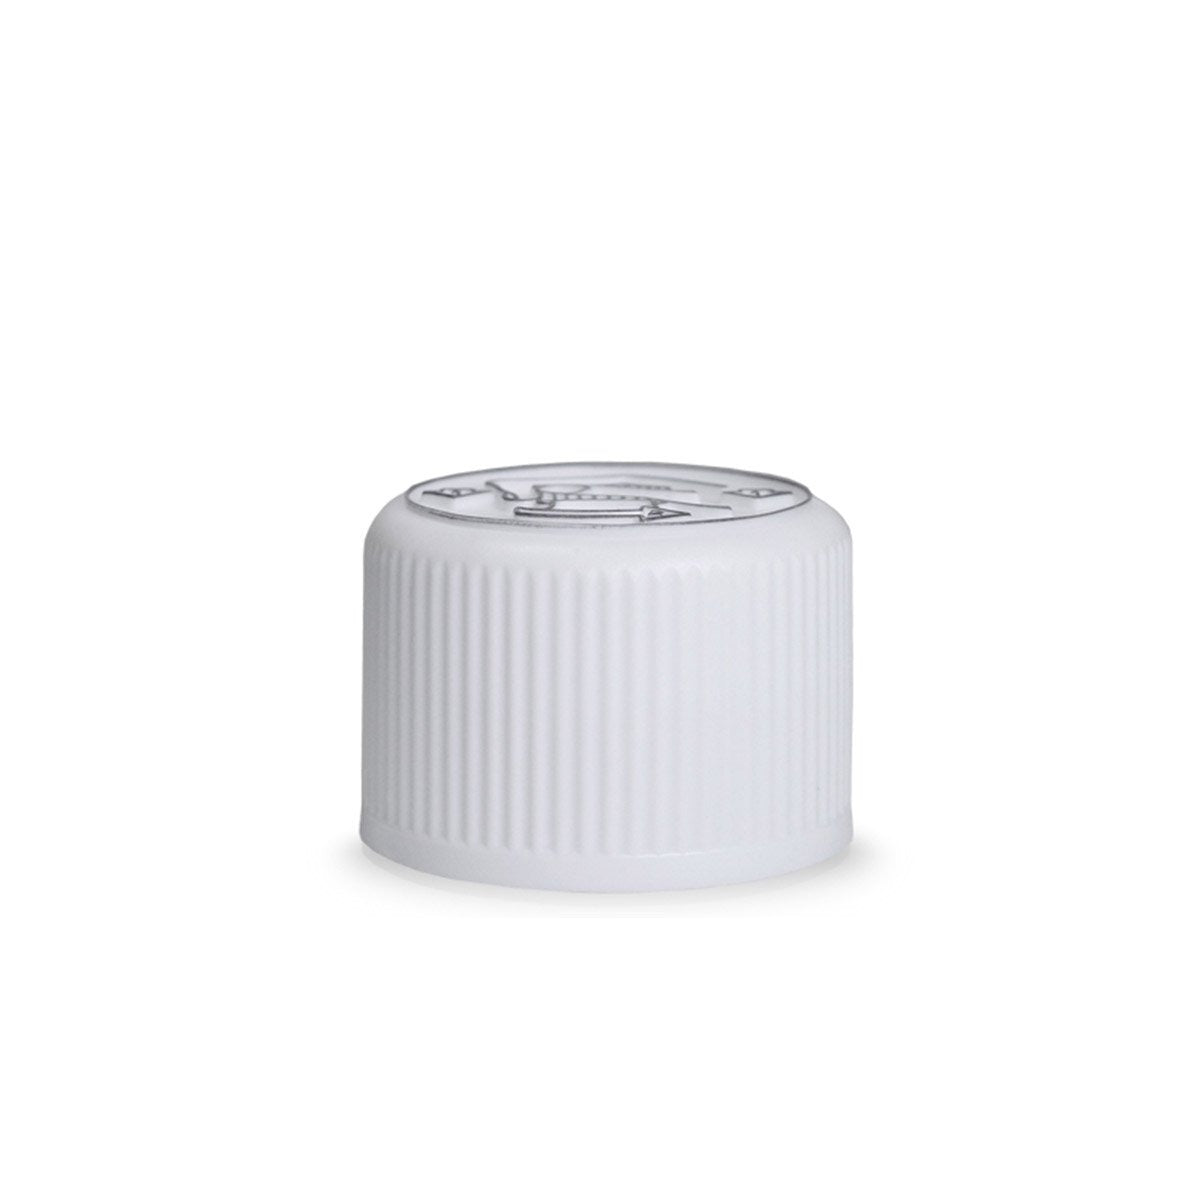 20mm White Child Lock Cap - VapeBunkerUK